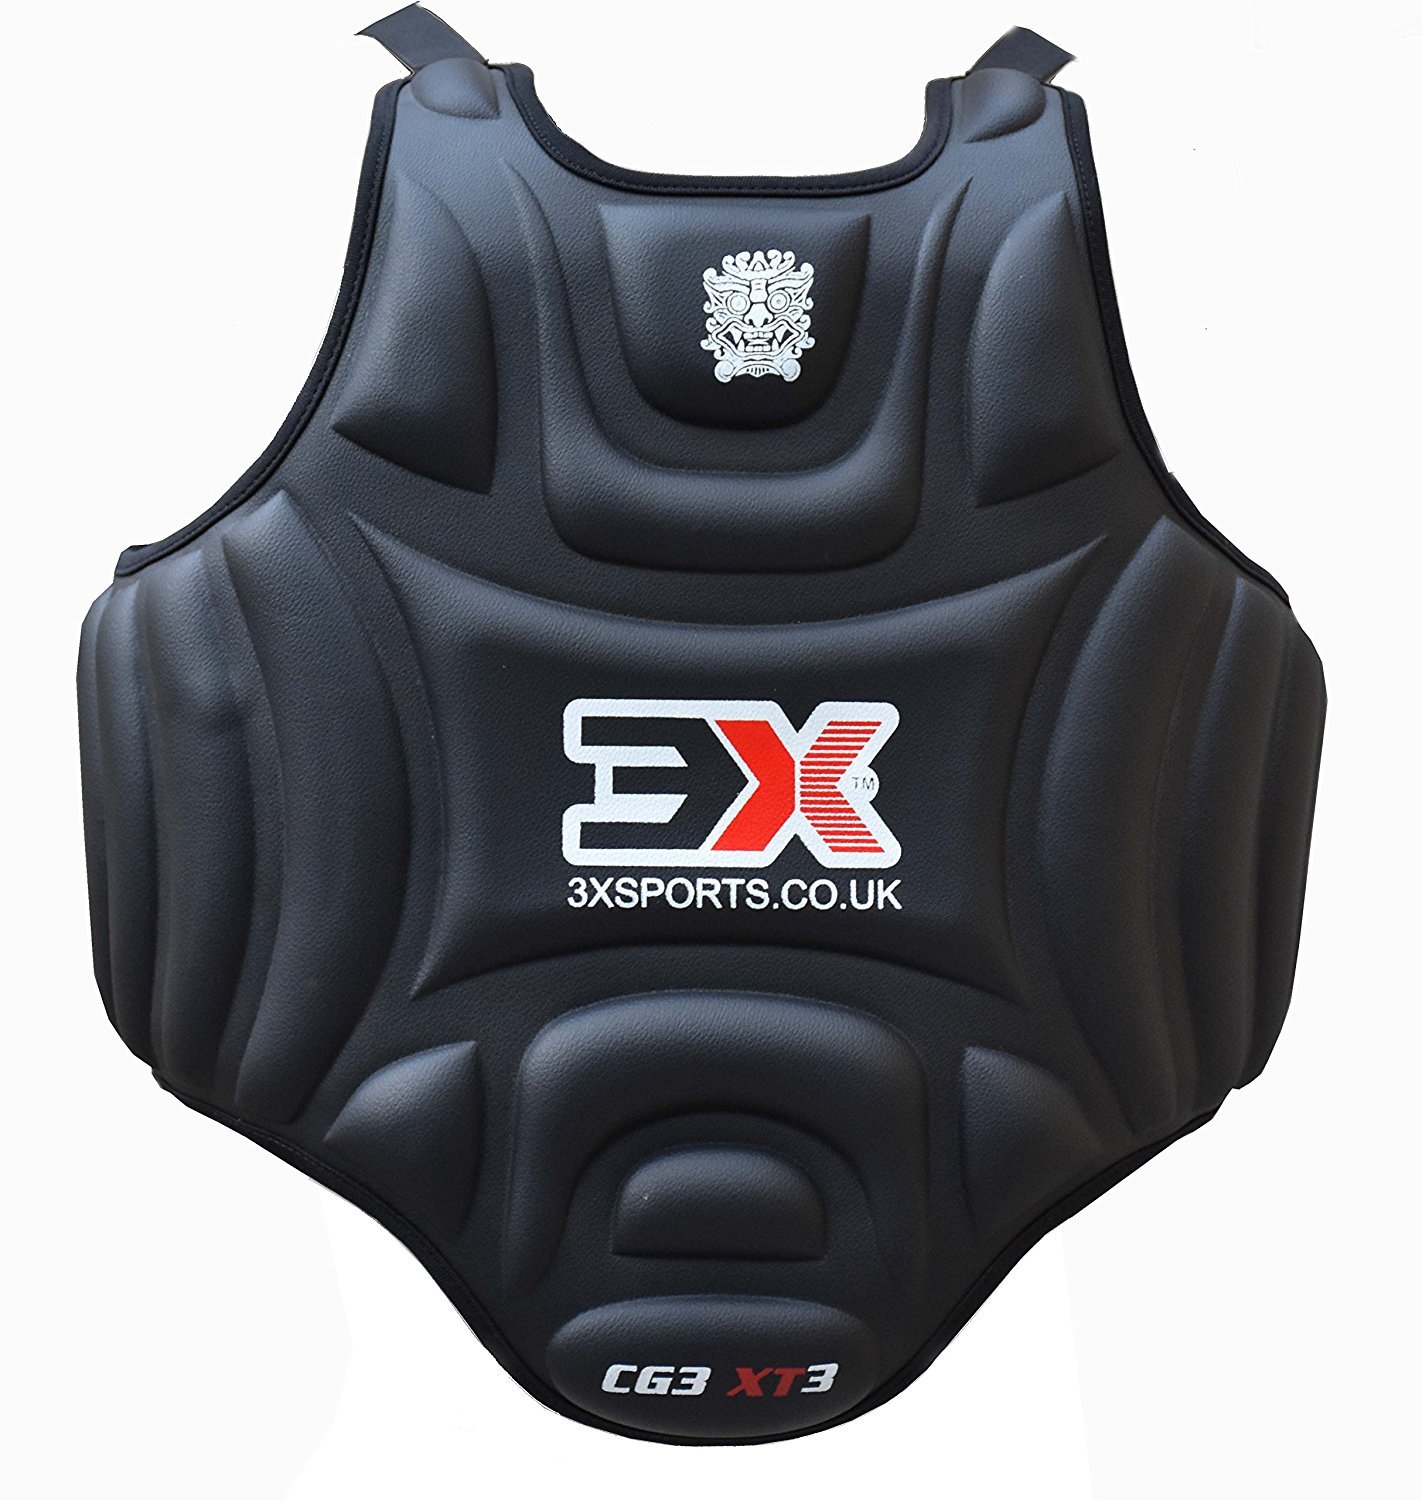 3XSports Pro Karate Körperschutz Körperschutzweste Taekwondo Chest Guard Body Protector MMA Armour Muay Thai Kick Boxen 3x Professional Choice